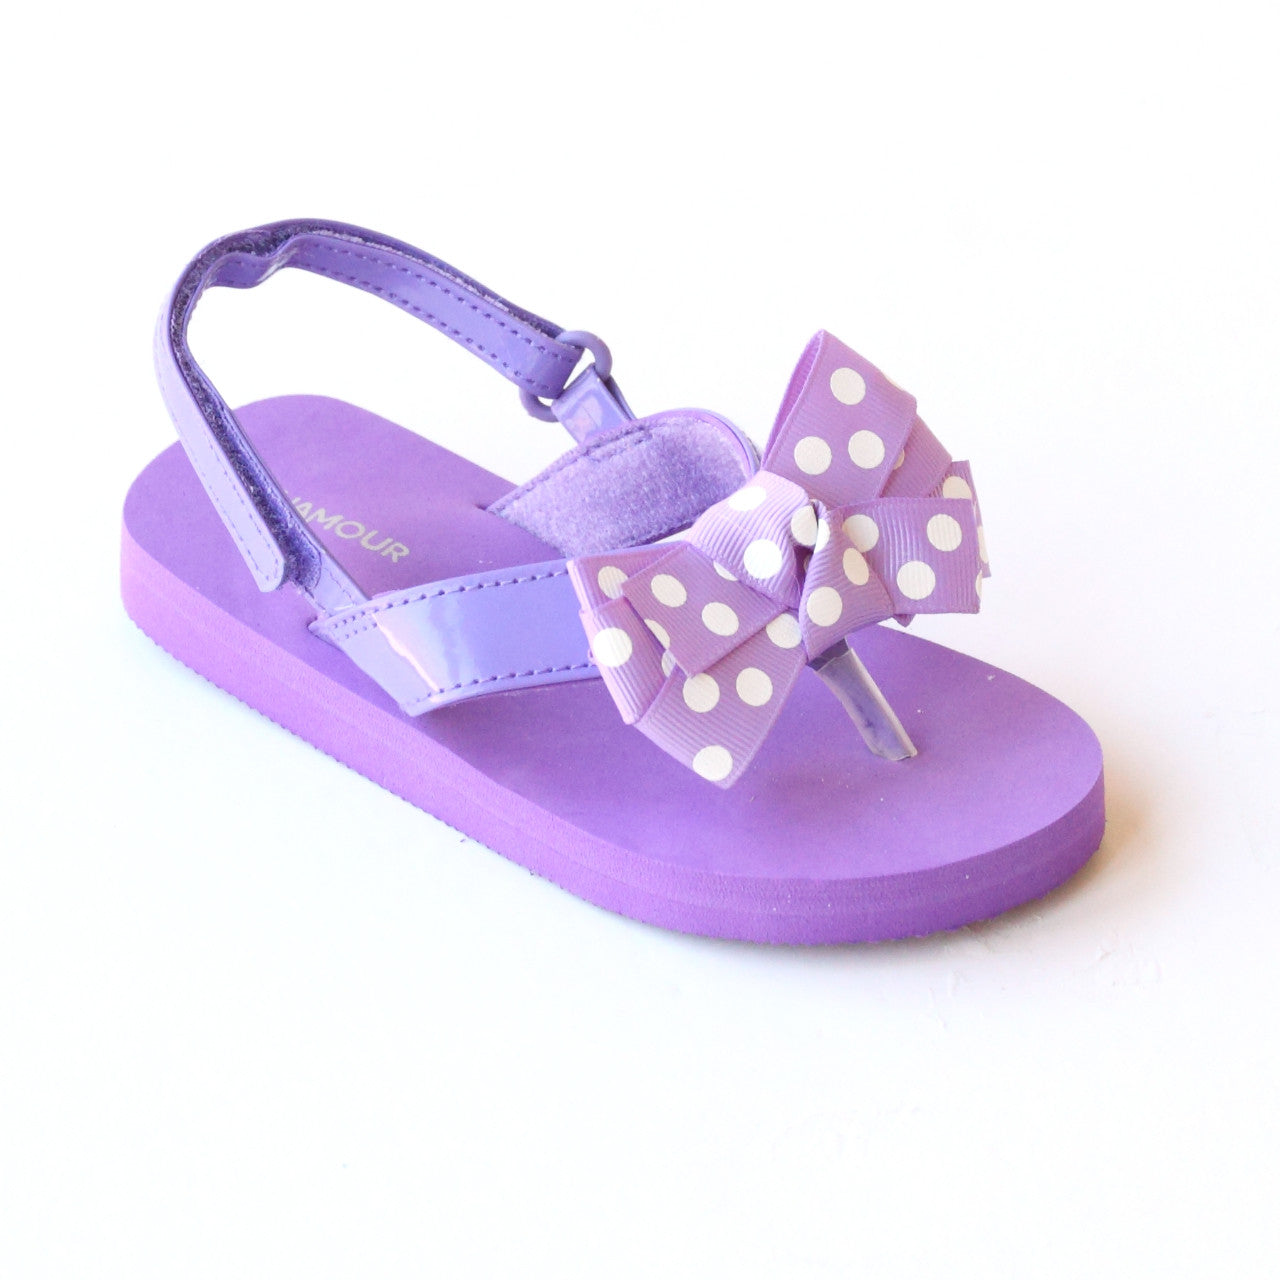 6e17807a7 L Amour Girls Polka Dot Bow Flip Flop Sandals – Babychelle